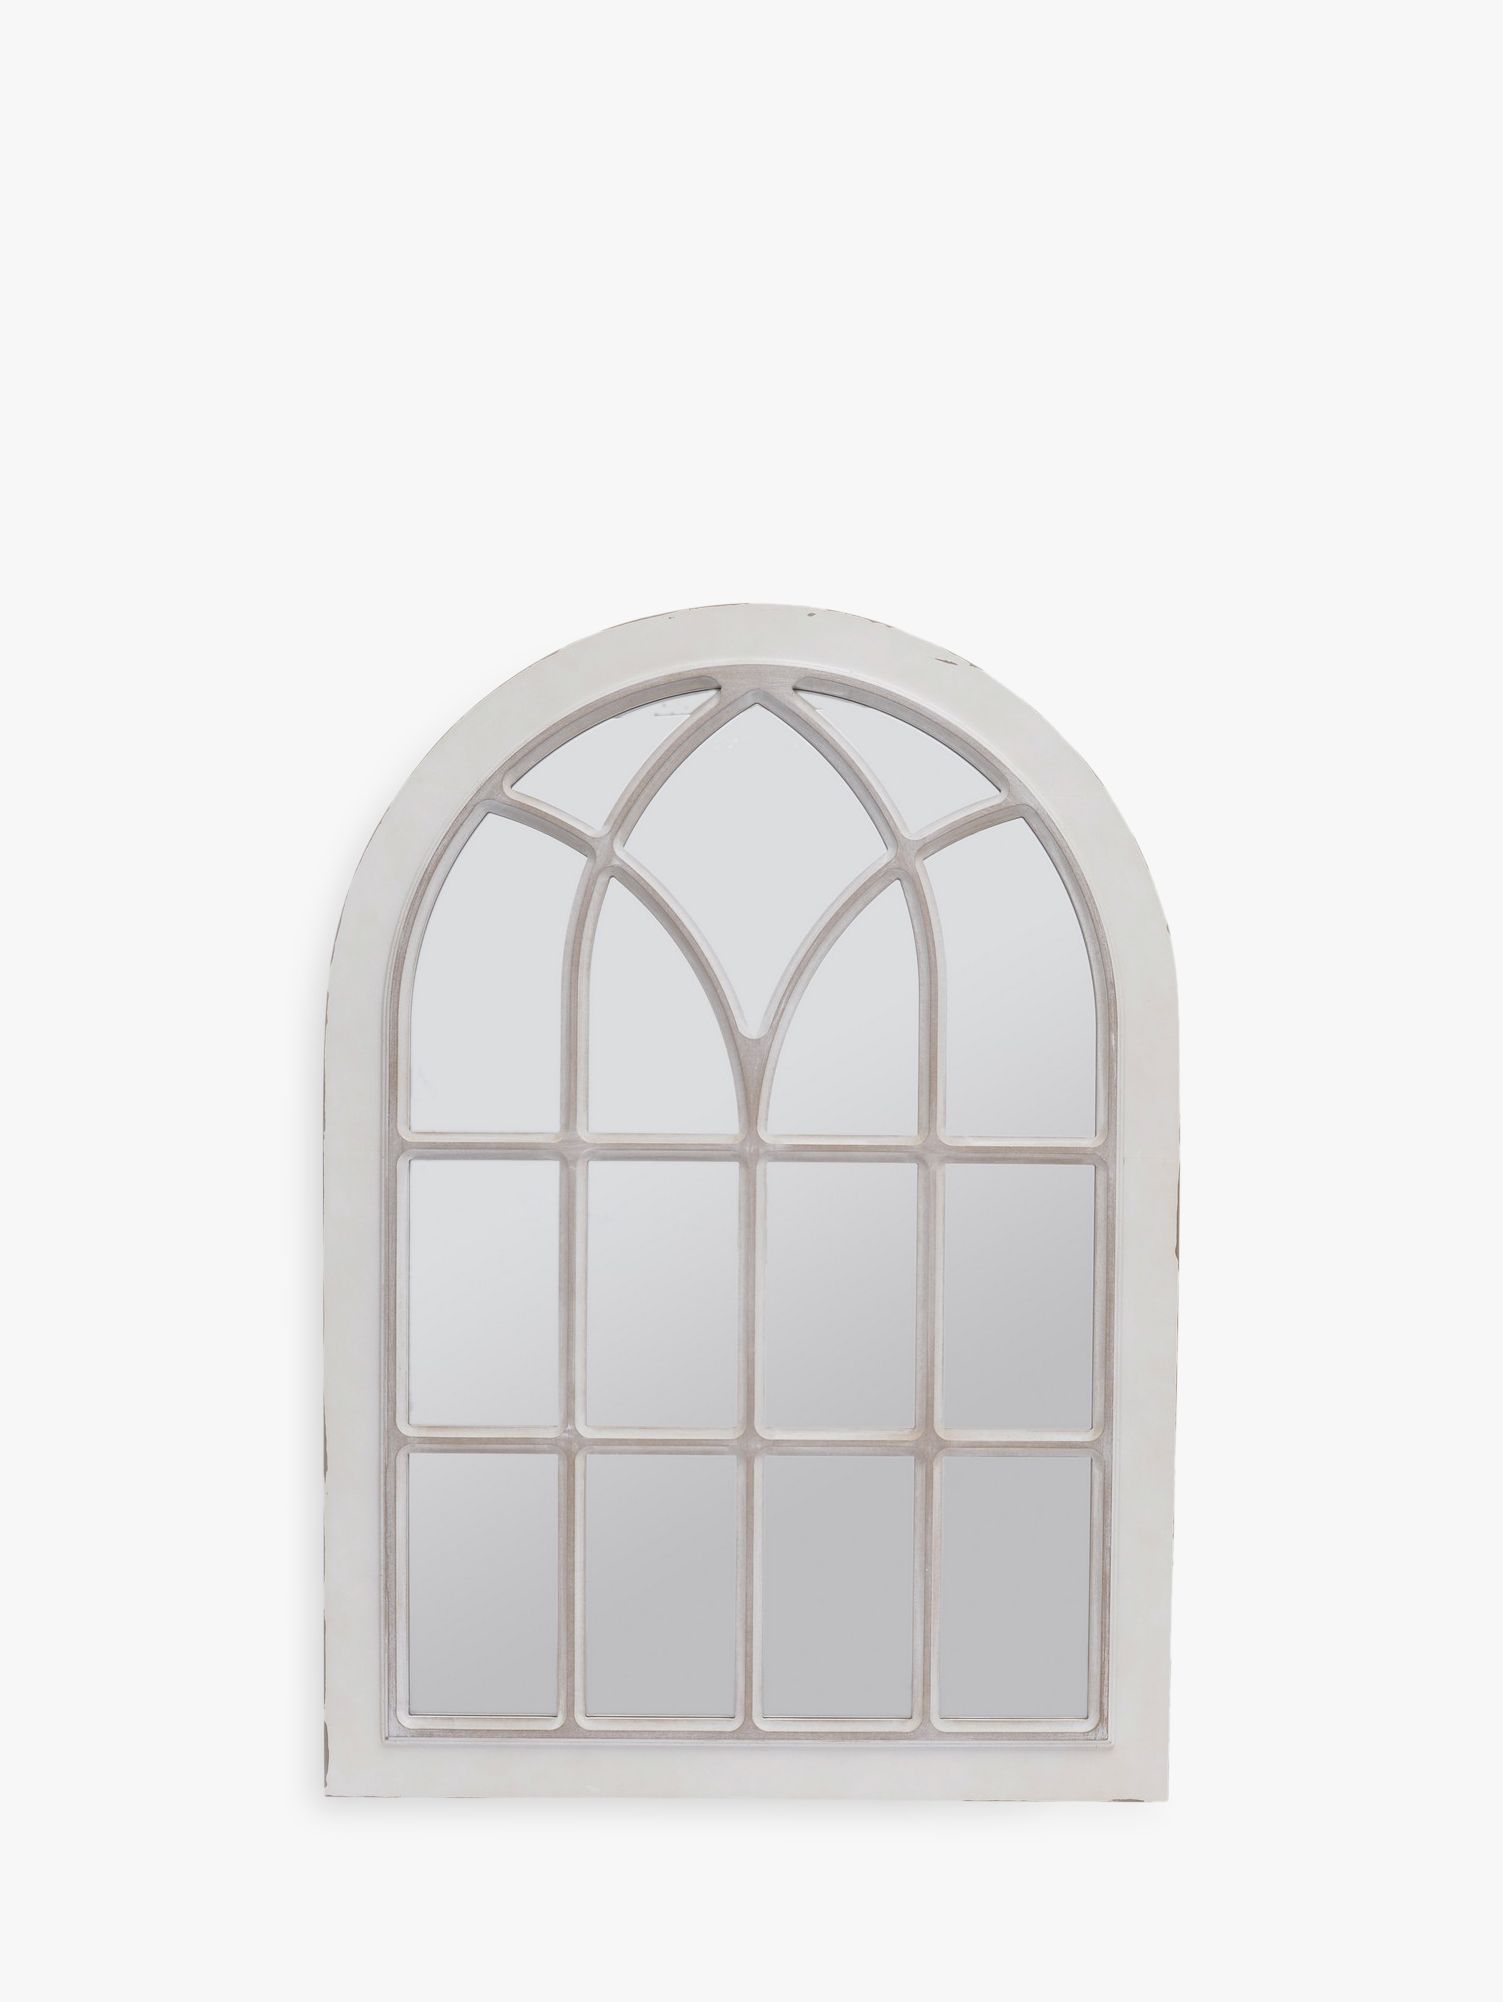 Libra Libra Distressed Arched Window Mirror, Cream, H111 x W78cm